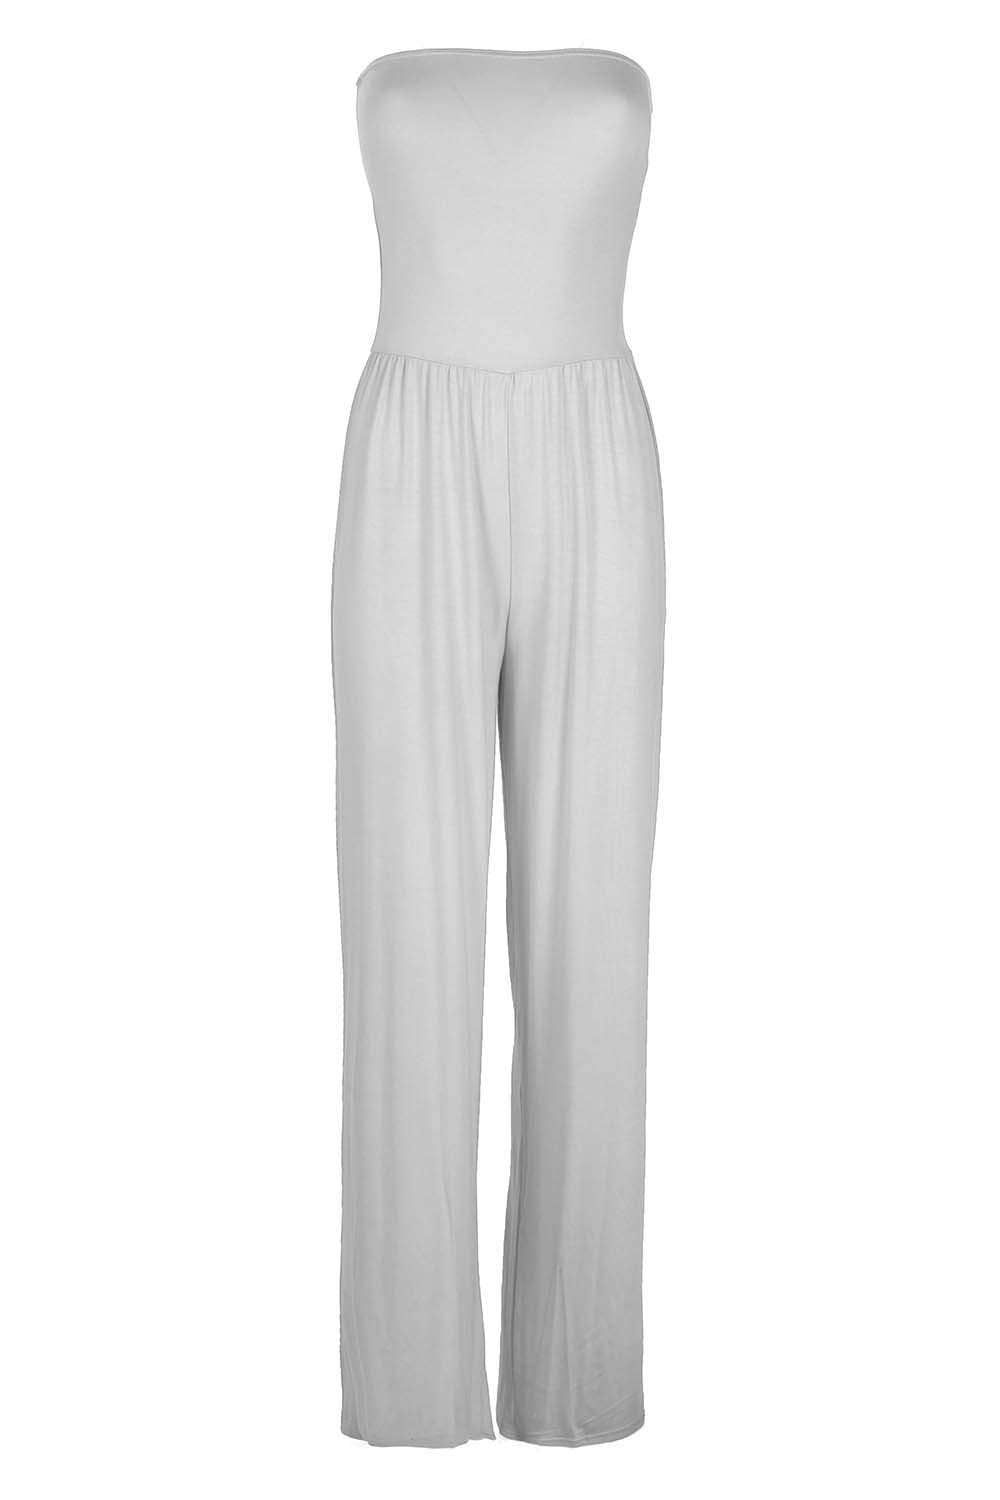 Kadie Off Shoulder Wide Leg Jumpsuit - bejealous-com